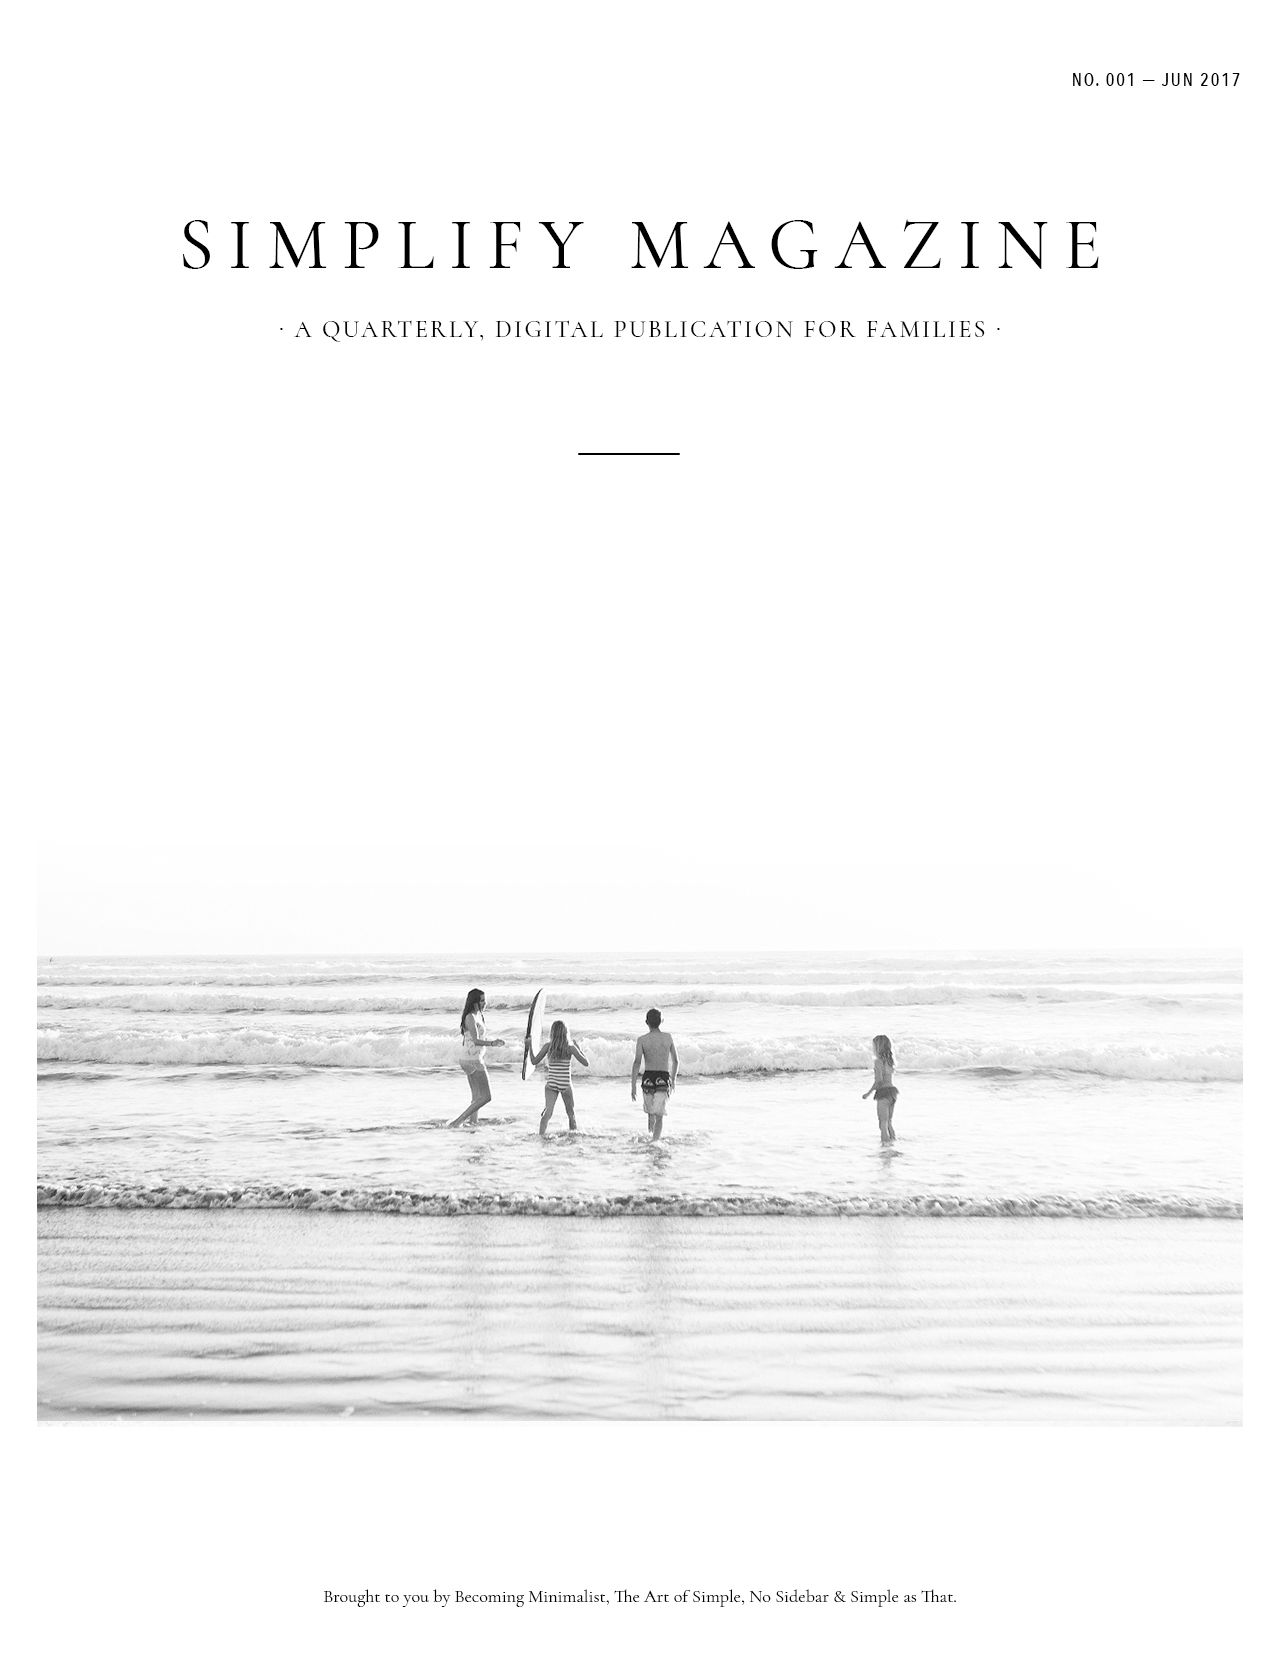 Simplify Magazine Issue #001